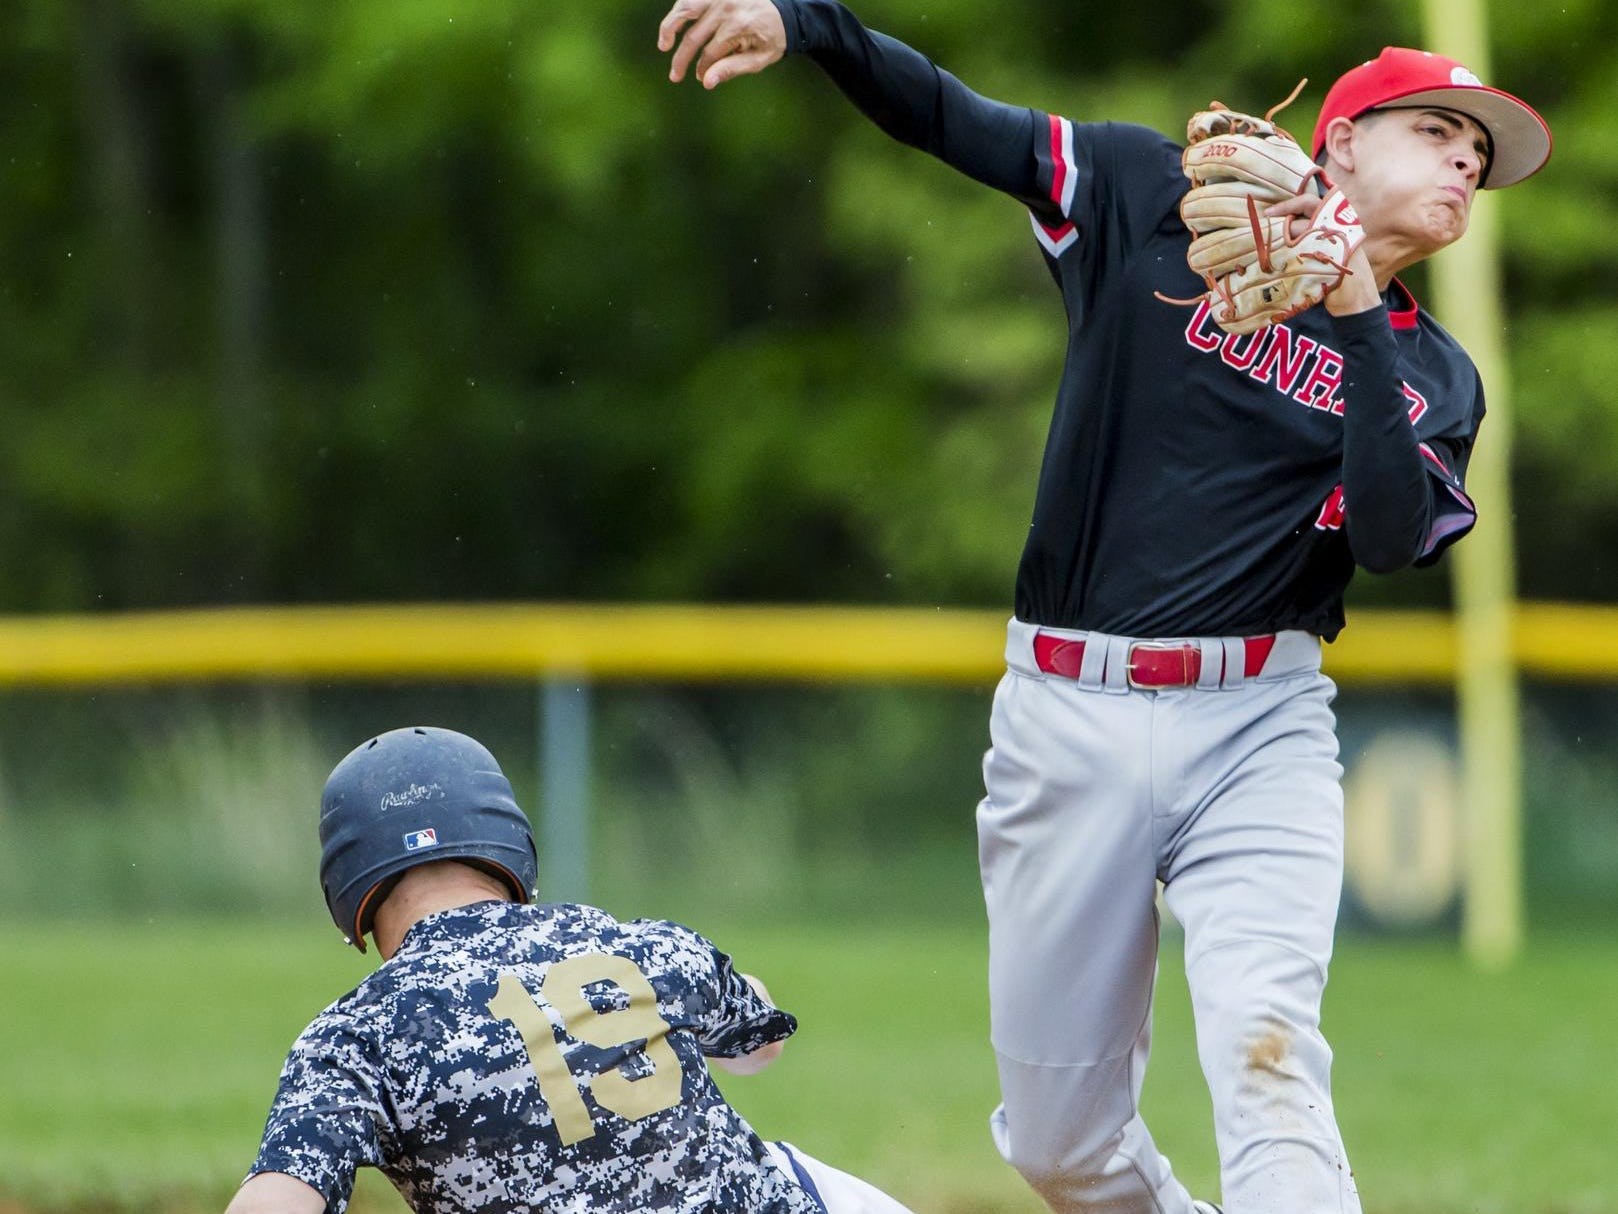 Conrad second baseman Kevin Russo throws to first as he tries to turn a double play after tagging out Delaware Military Academy's Jacob Hudson (No. 19) in Conrad's 1-0 win over Delaware Military Academy in Newark on Tuesday afternoon.